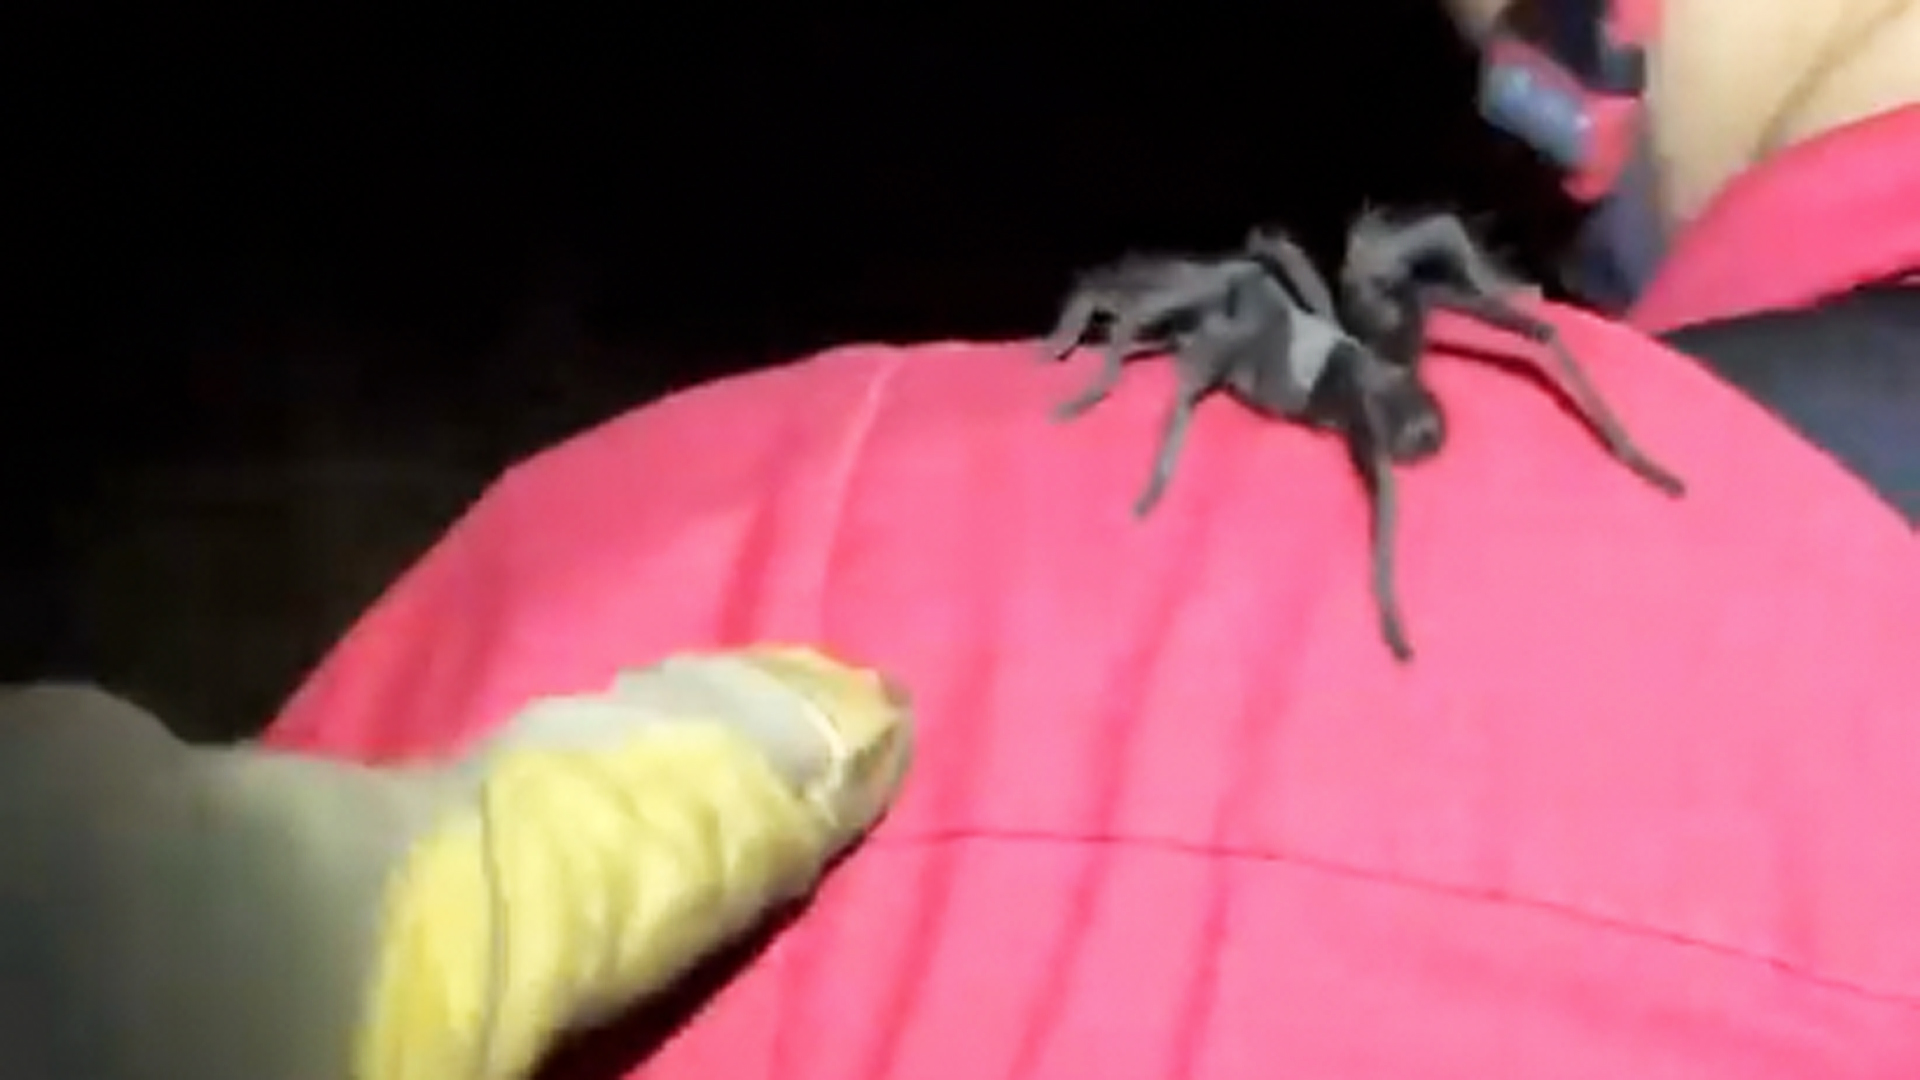 A tarantula is seen in an image posted to the Altadena Mountain Rescue Team's Facebook page.